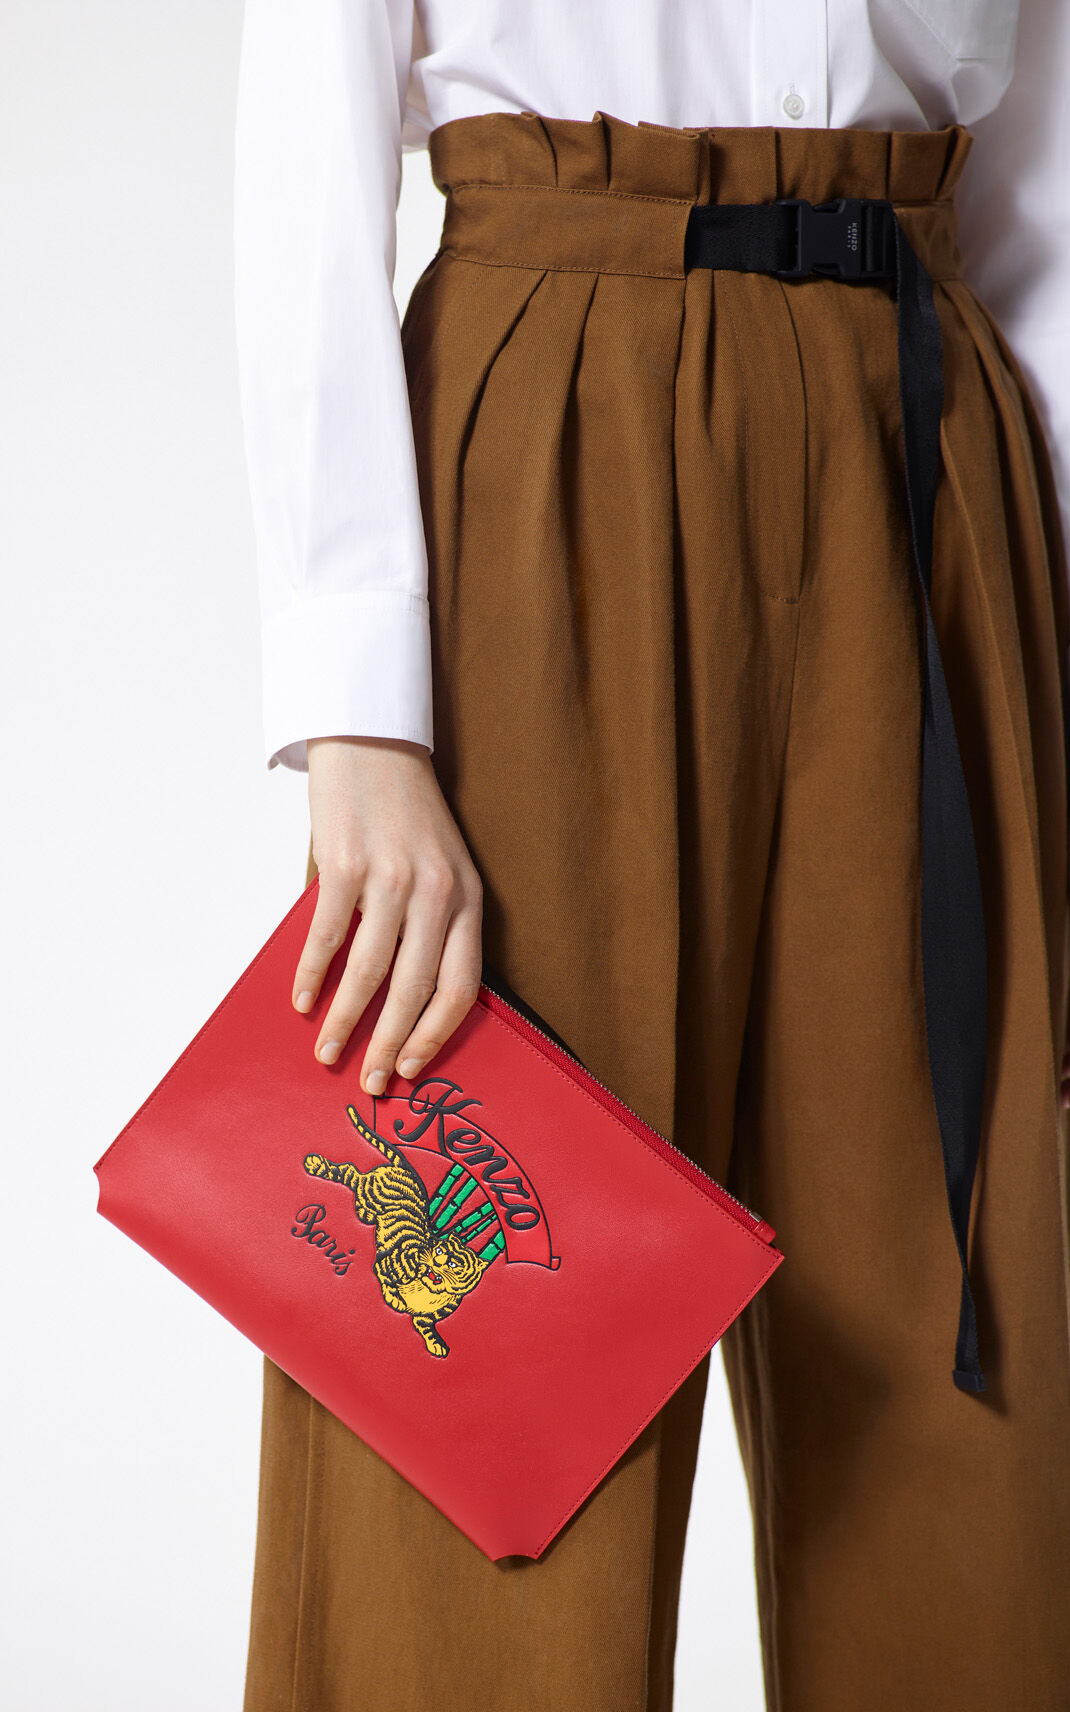 MEDIUM RED A4 'Jumping Tiger' Clutch Bag for unisex KENZO